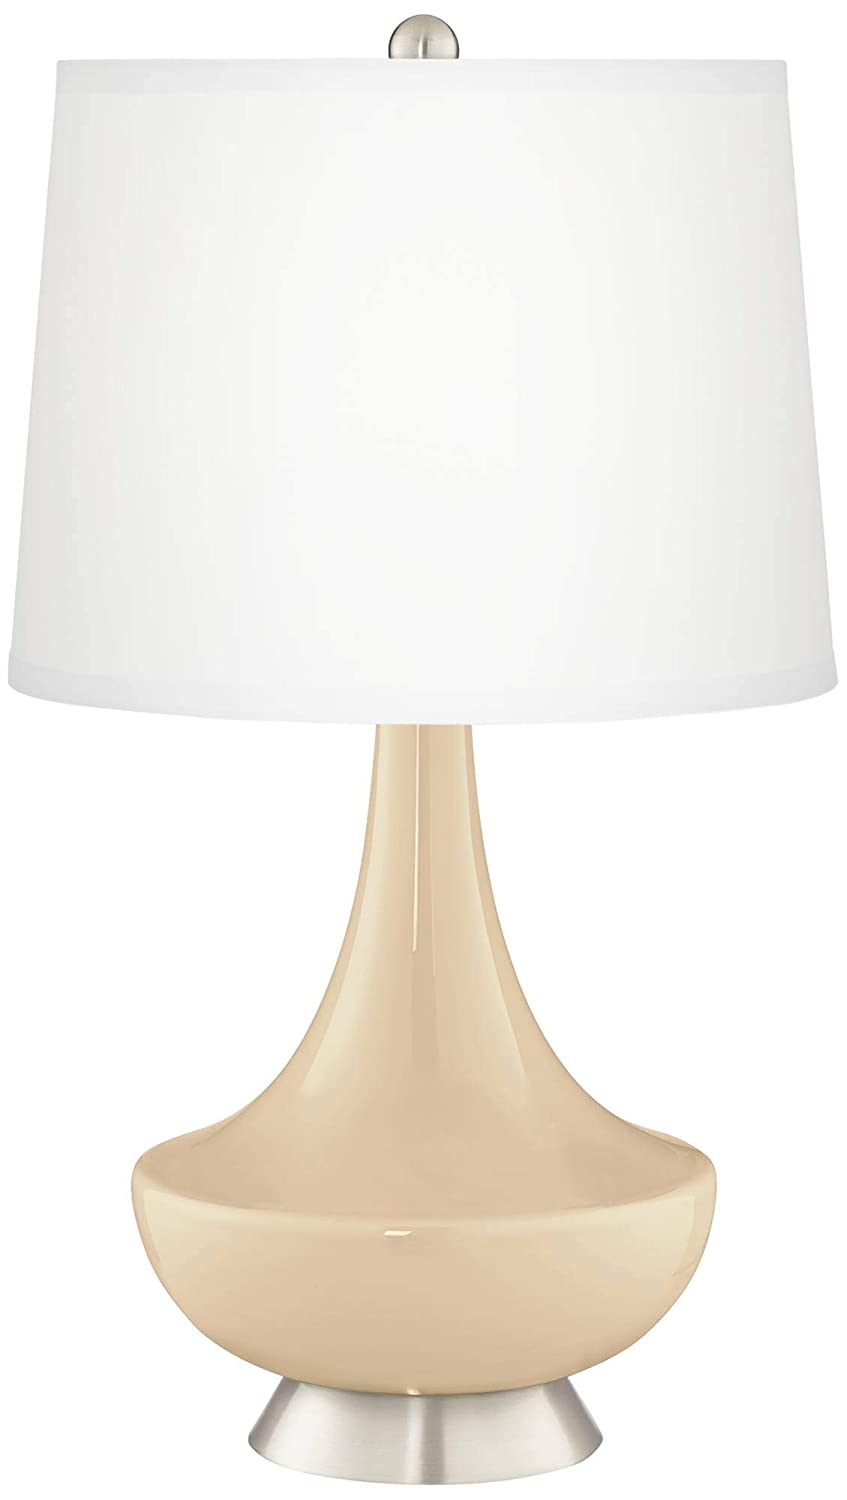 Gillan Modern Table Lamp Clear Glass Fillable White Drum Shade For Living  Room Family Bedroom Bedside Nightstand Office   Color + Plus     Amazon.com